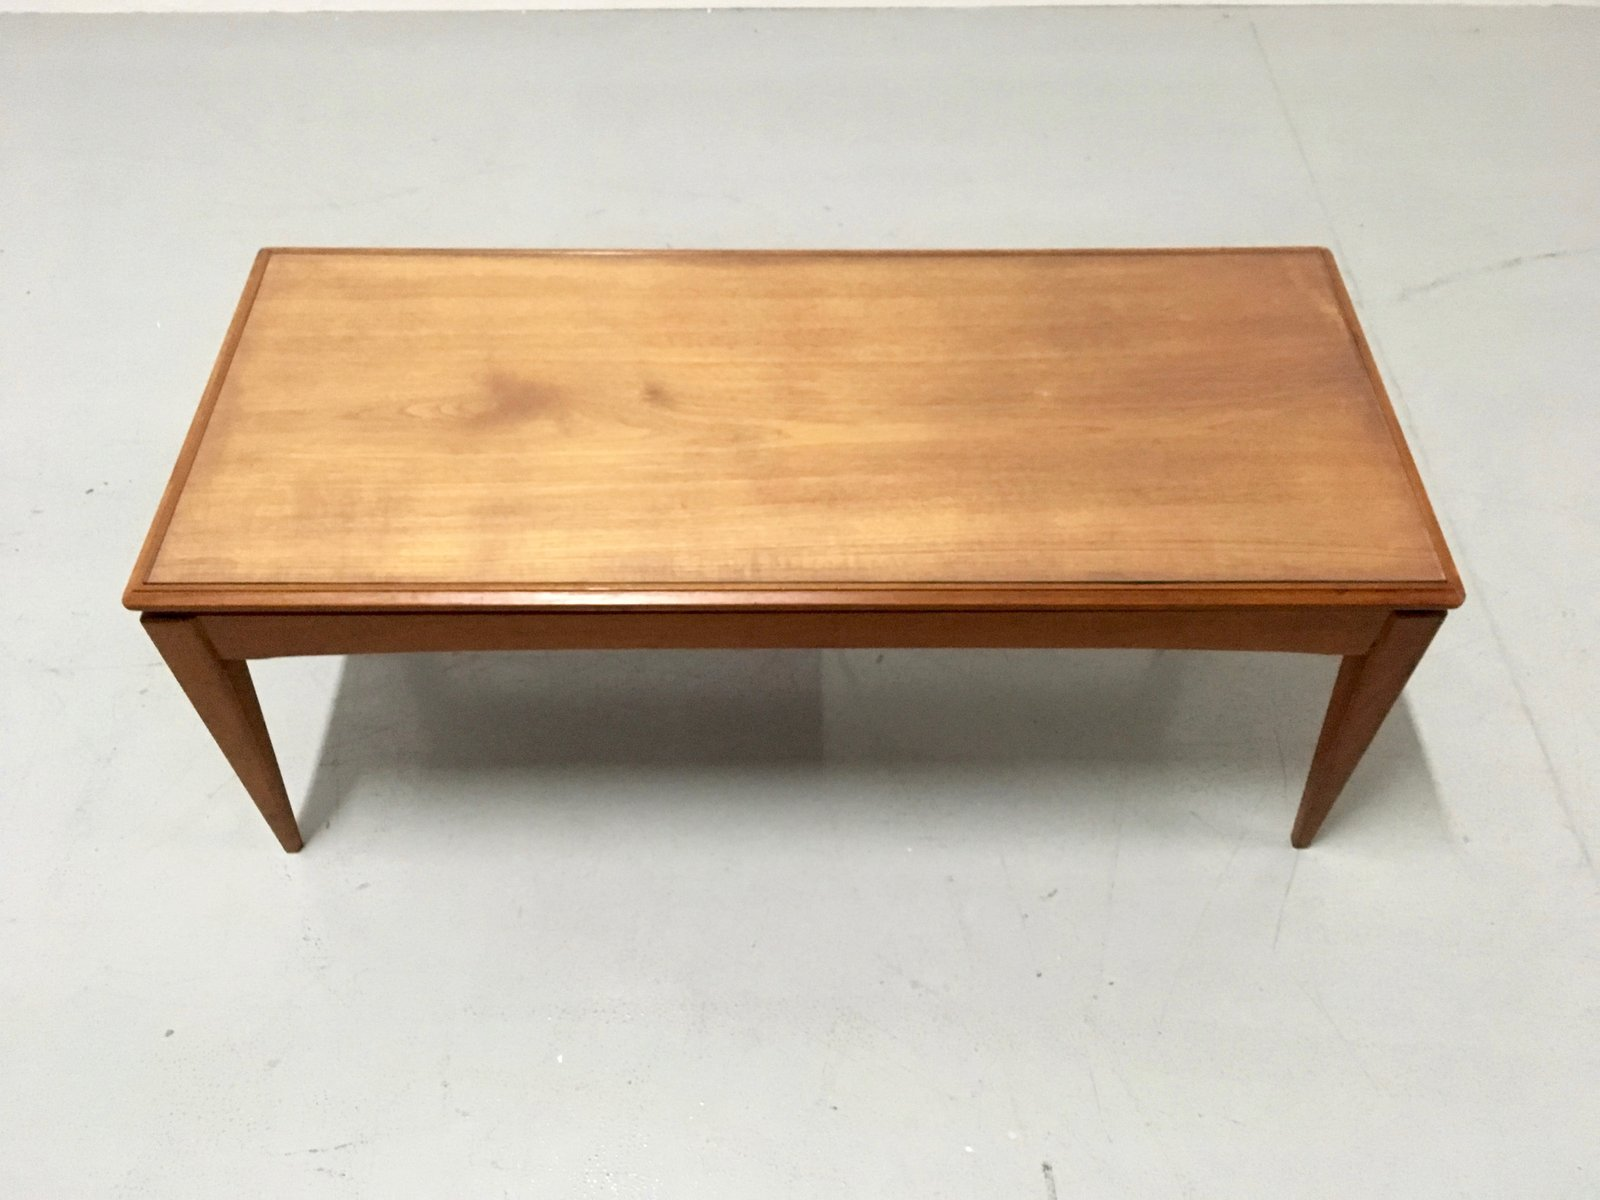 Vintage Teak Coffee Table by Richard Hornby for Fyne Ladye 1960s